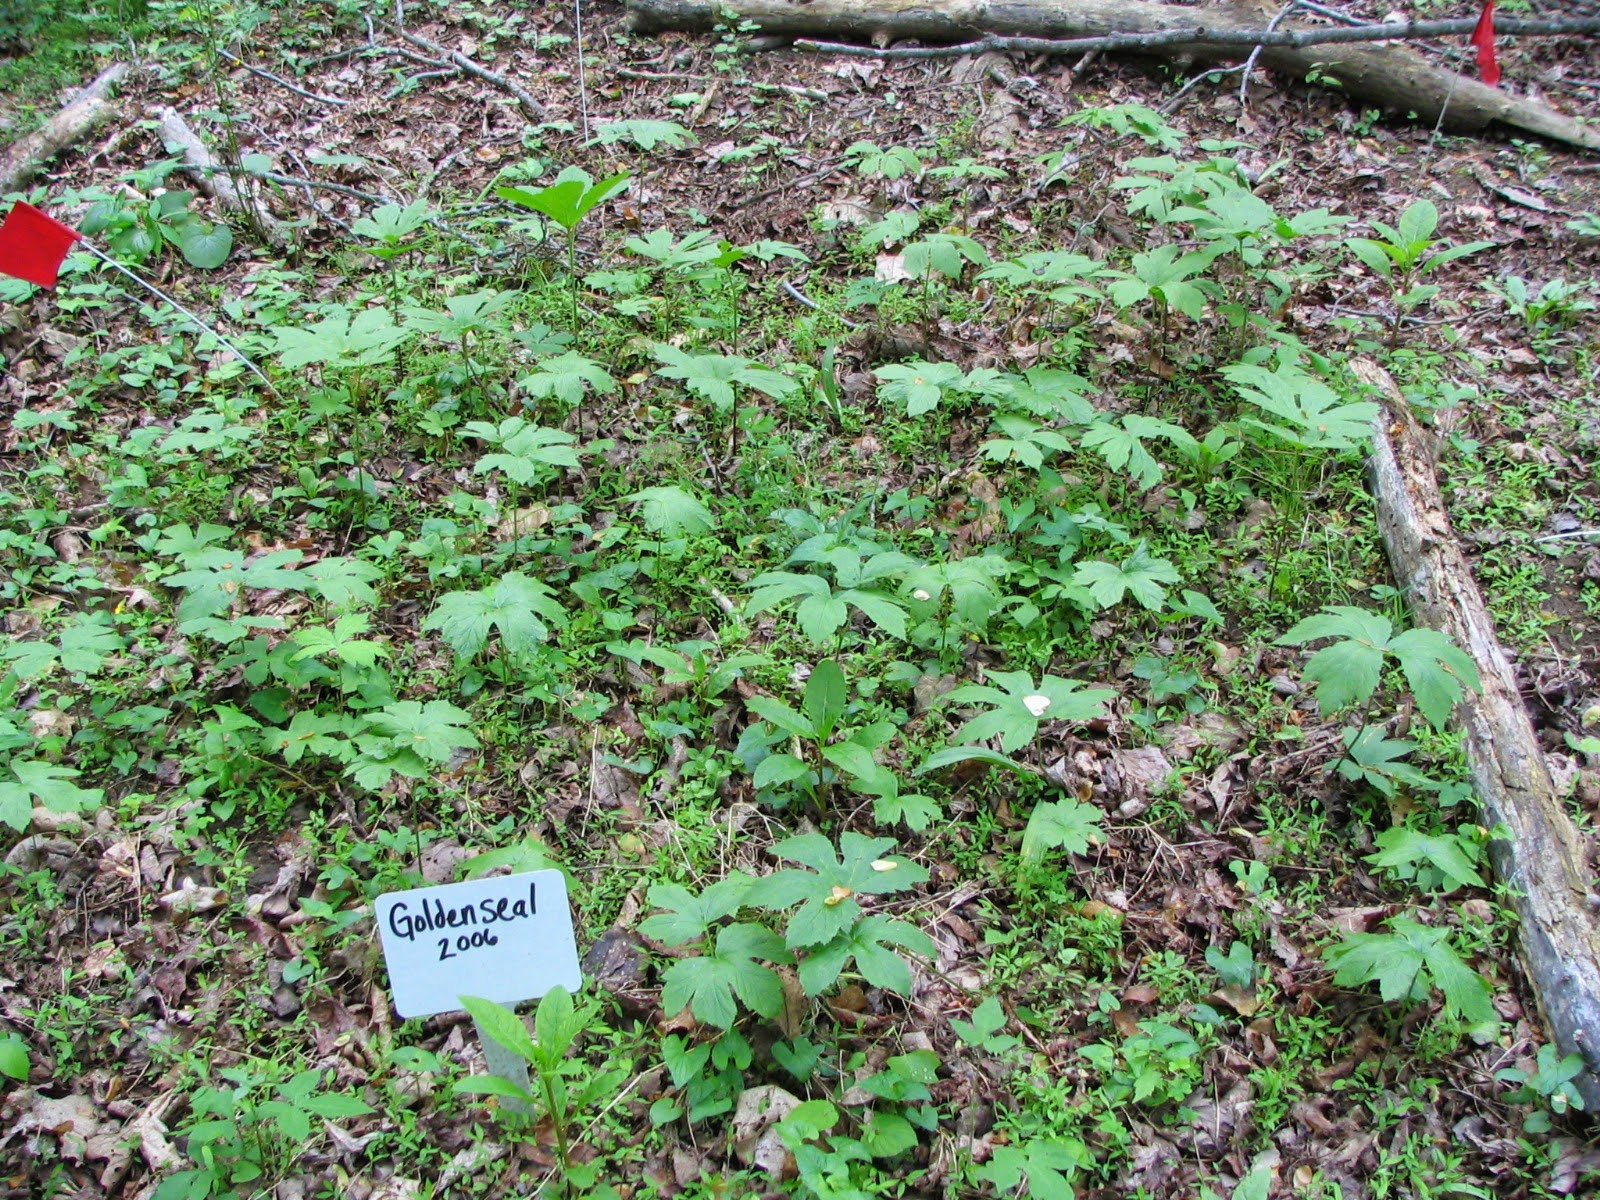 goldenseal plot